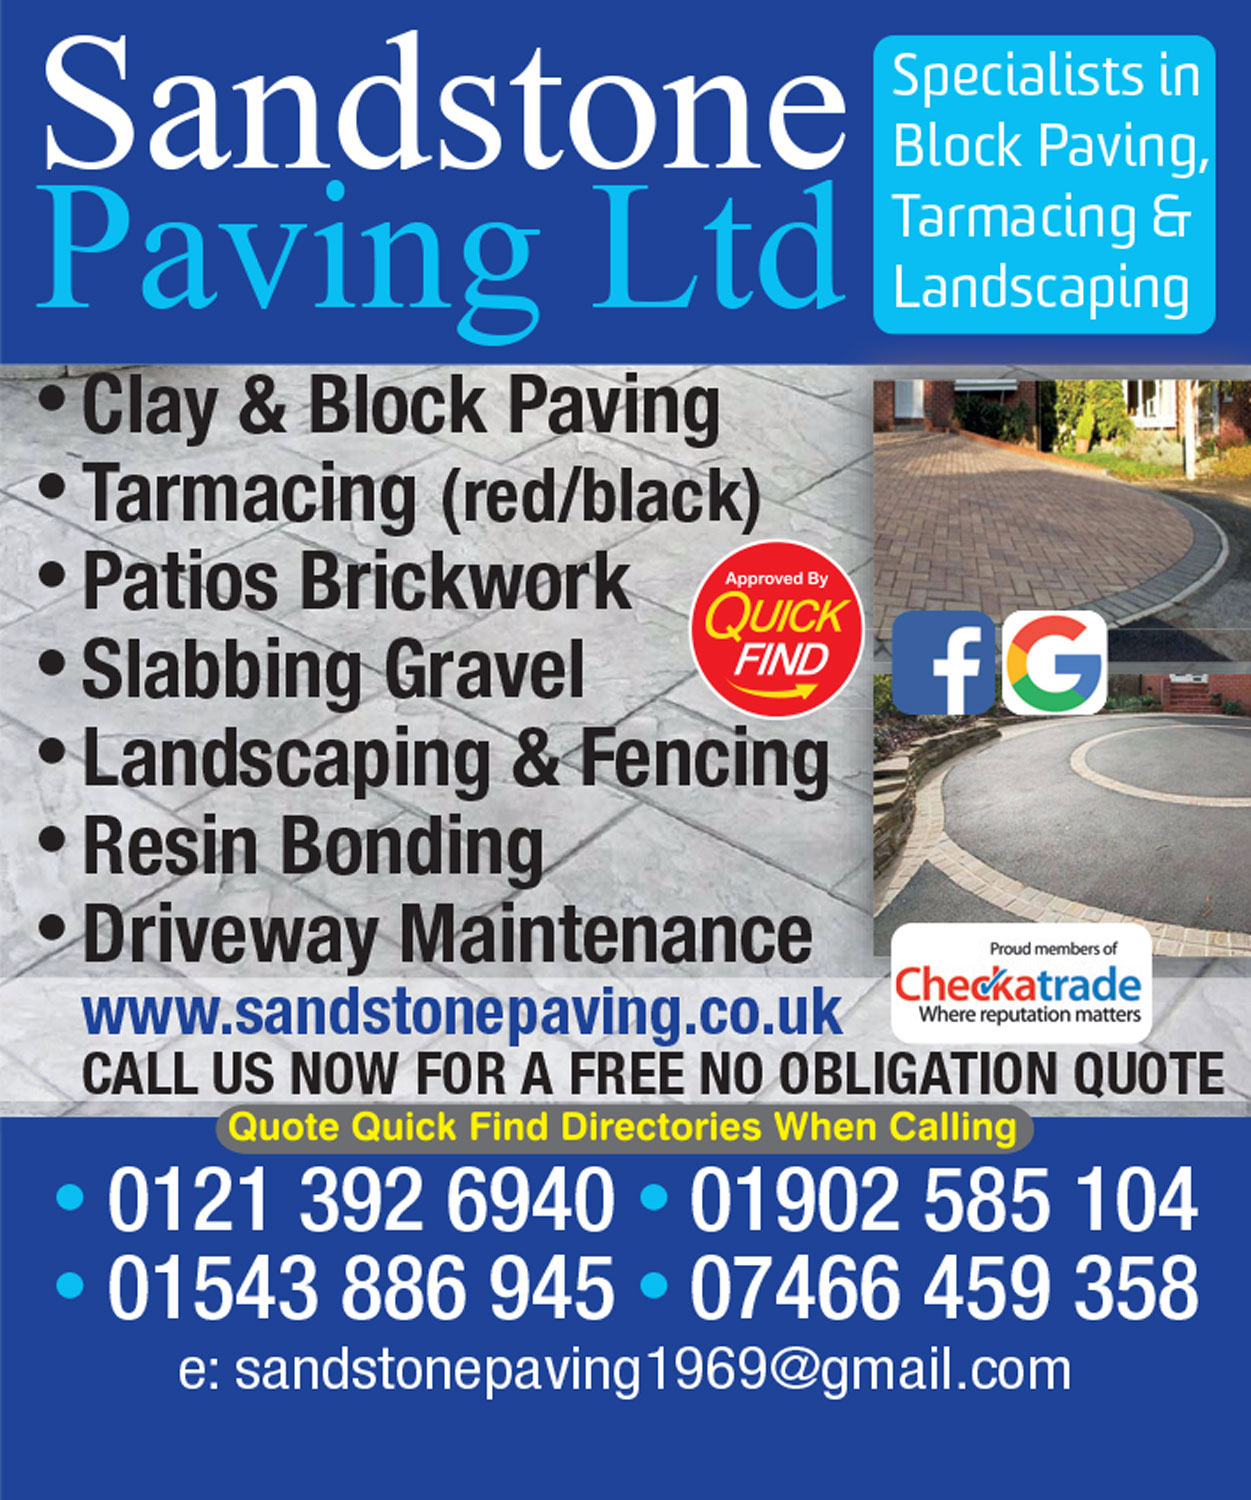 Sandstone Paving Ltd.